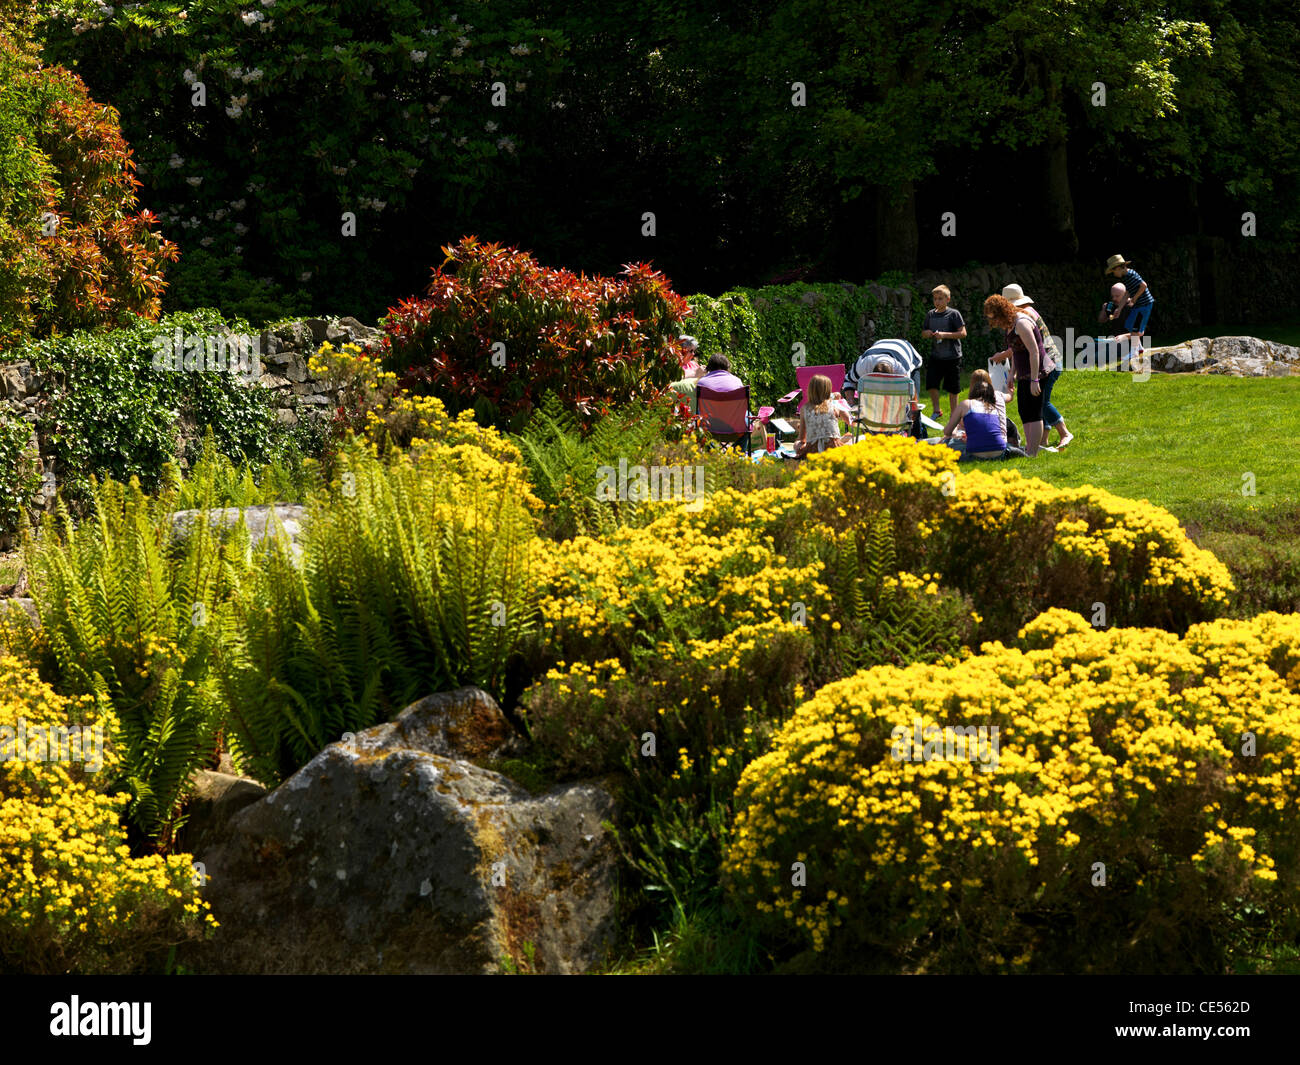 Rowallane Garden, County Down, Northern Ireland - Stock Image